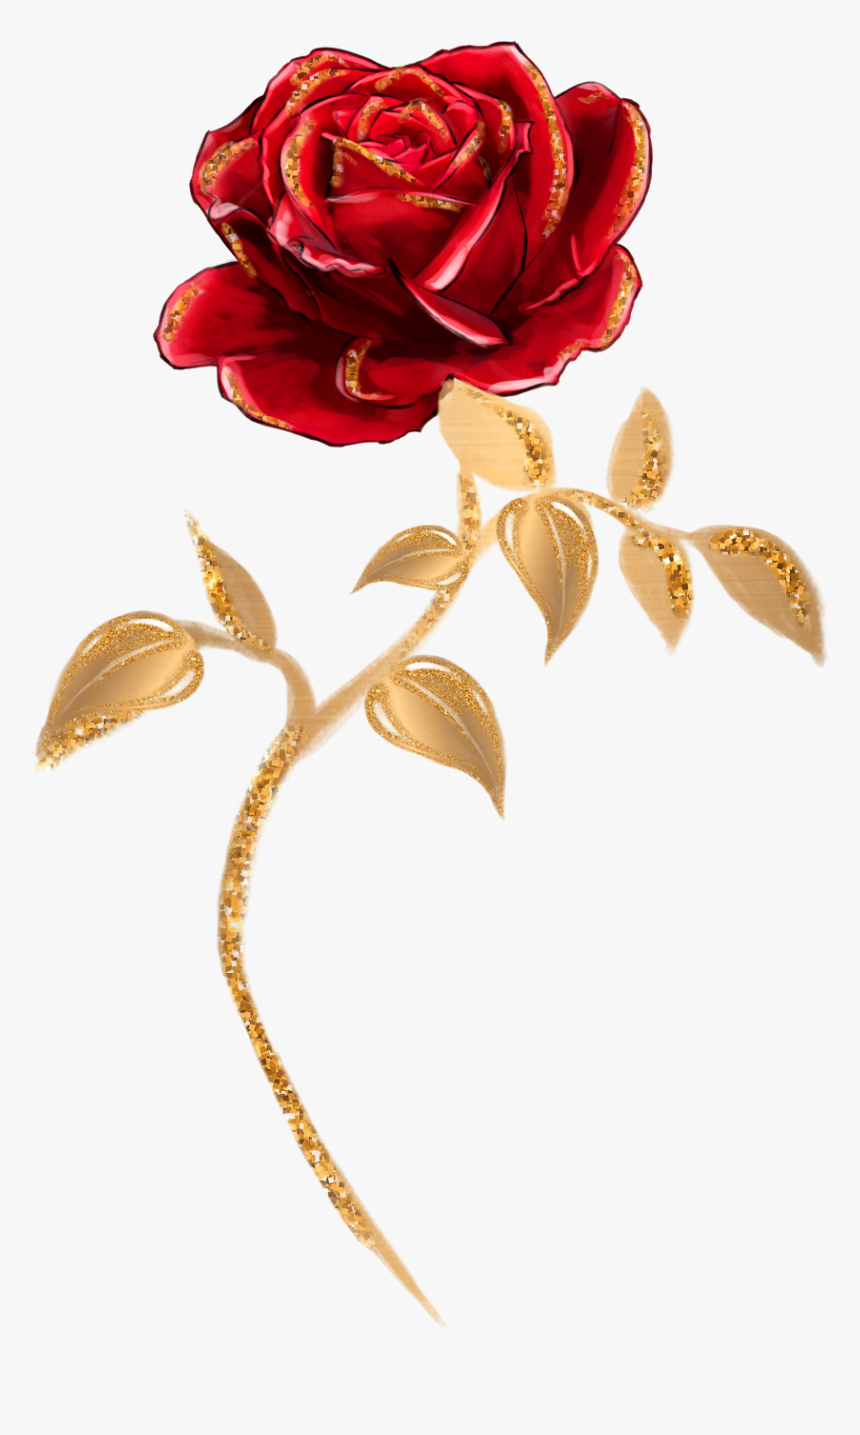 Beauty Single Rose - Beauty And The Beast Single Rose, HD Png Download, Free Download